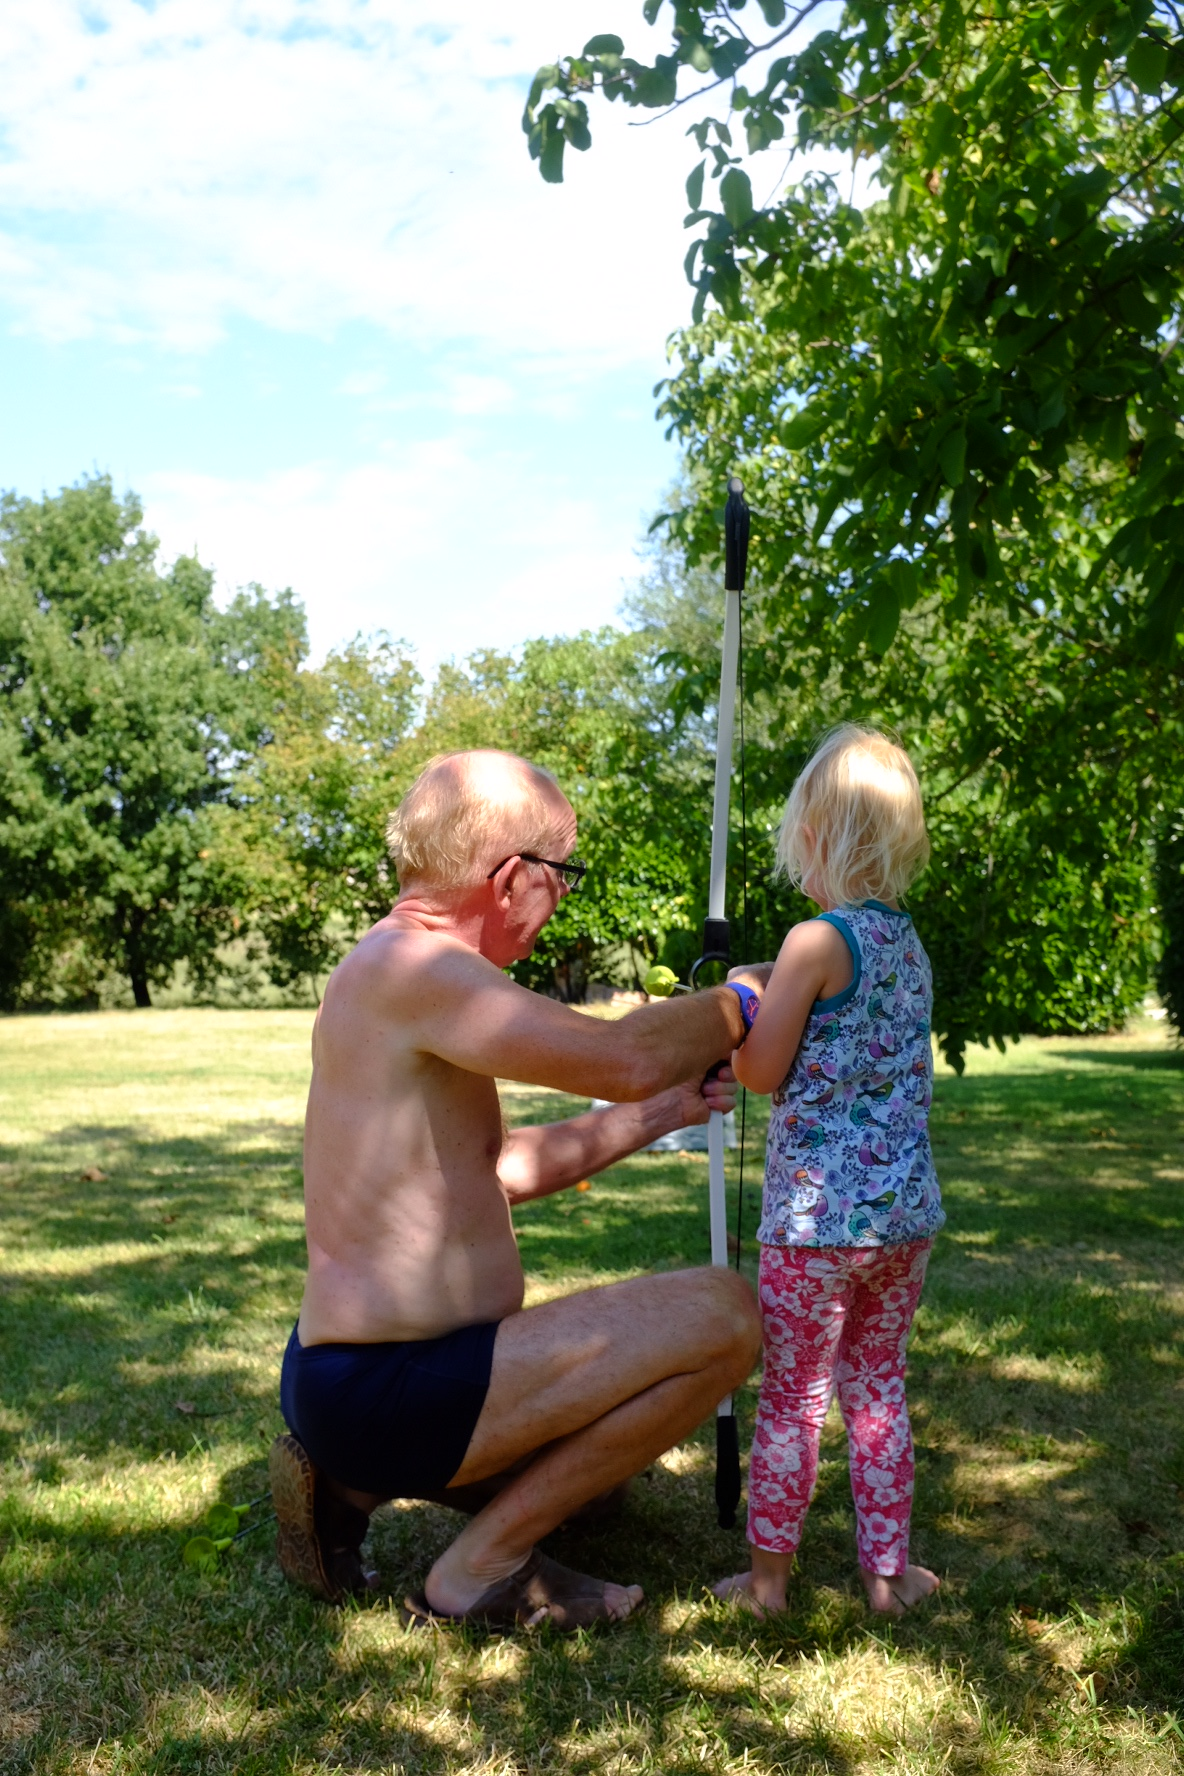 Archery in the garden.